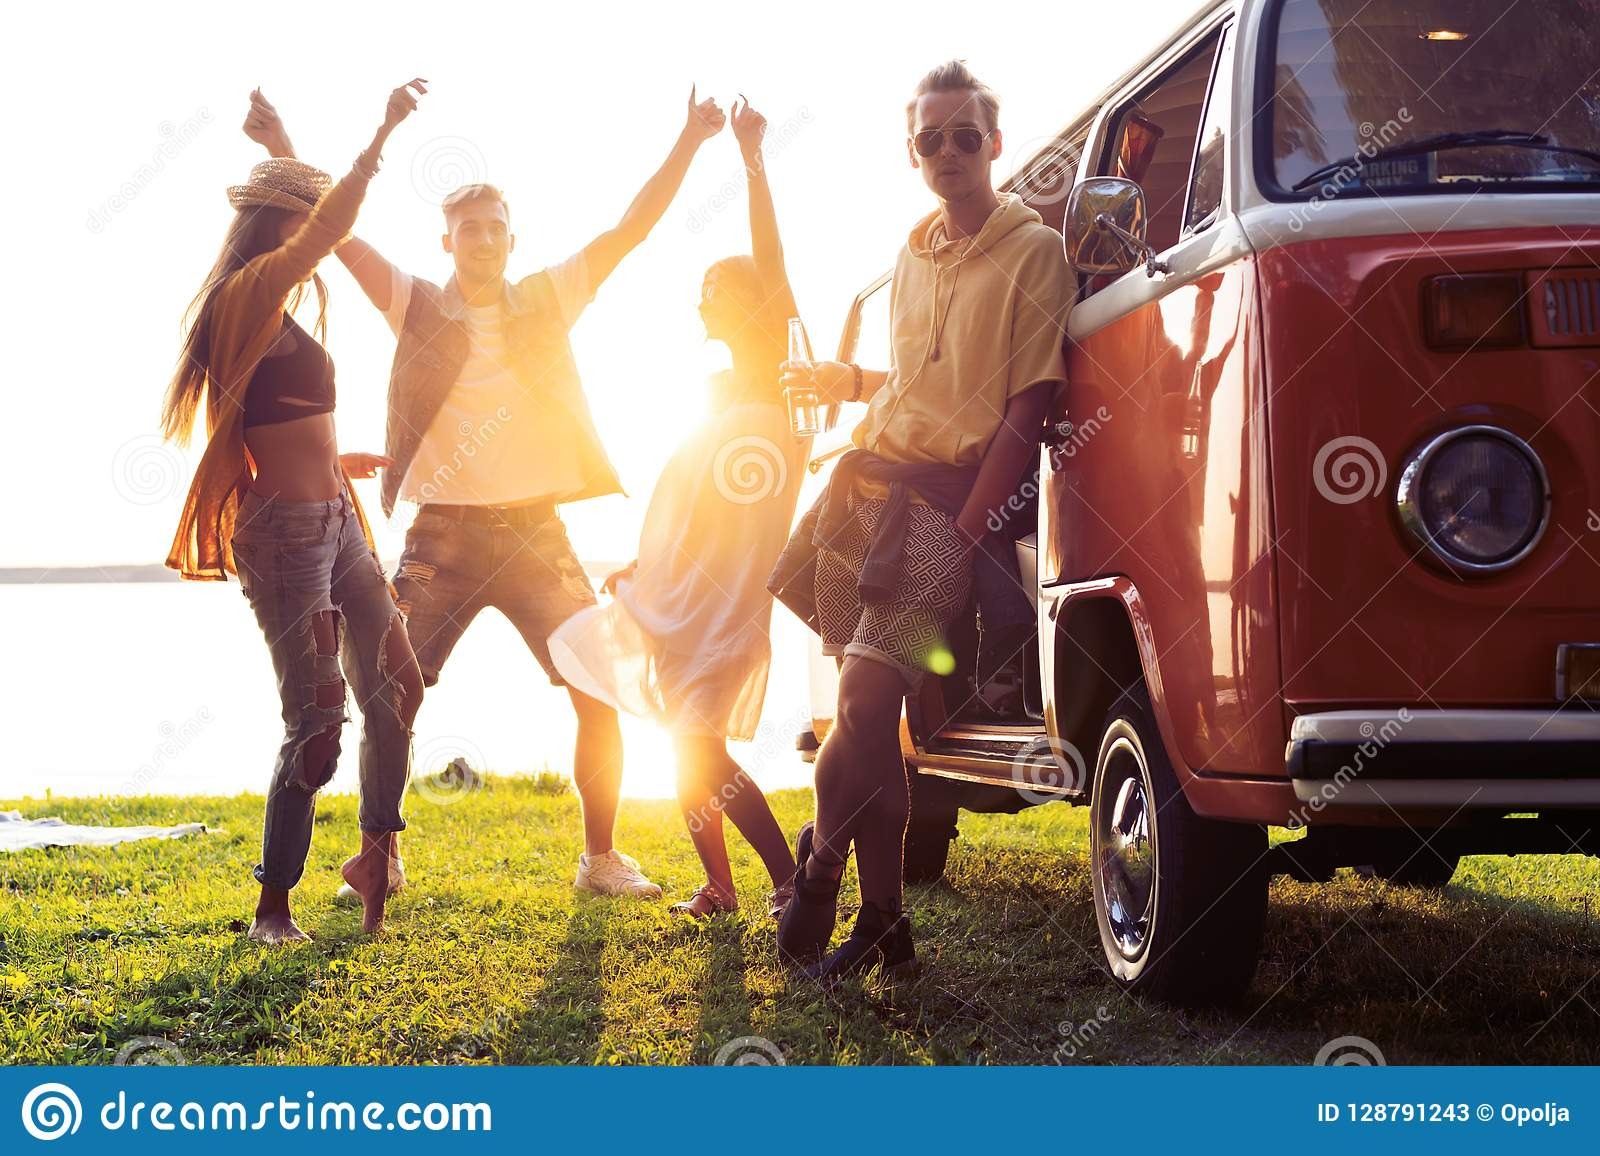 Summer holidays, road trip, vacation, travel and people concept - smiling young hippie friends having fun over minivan